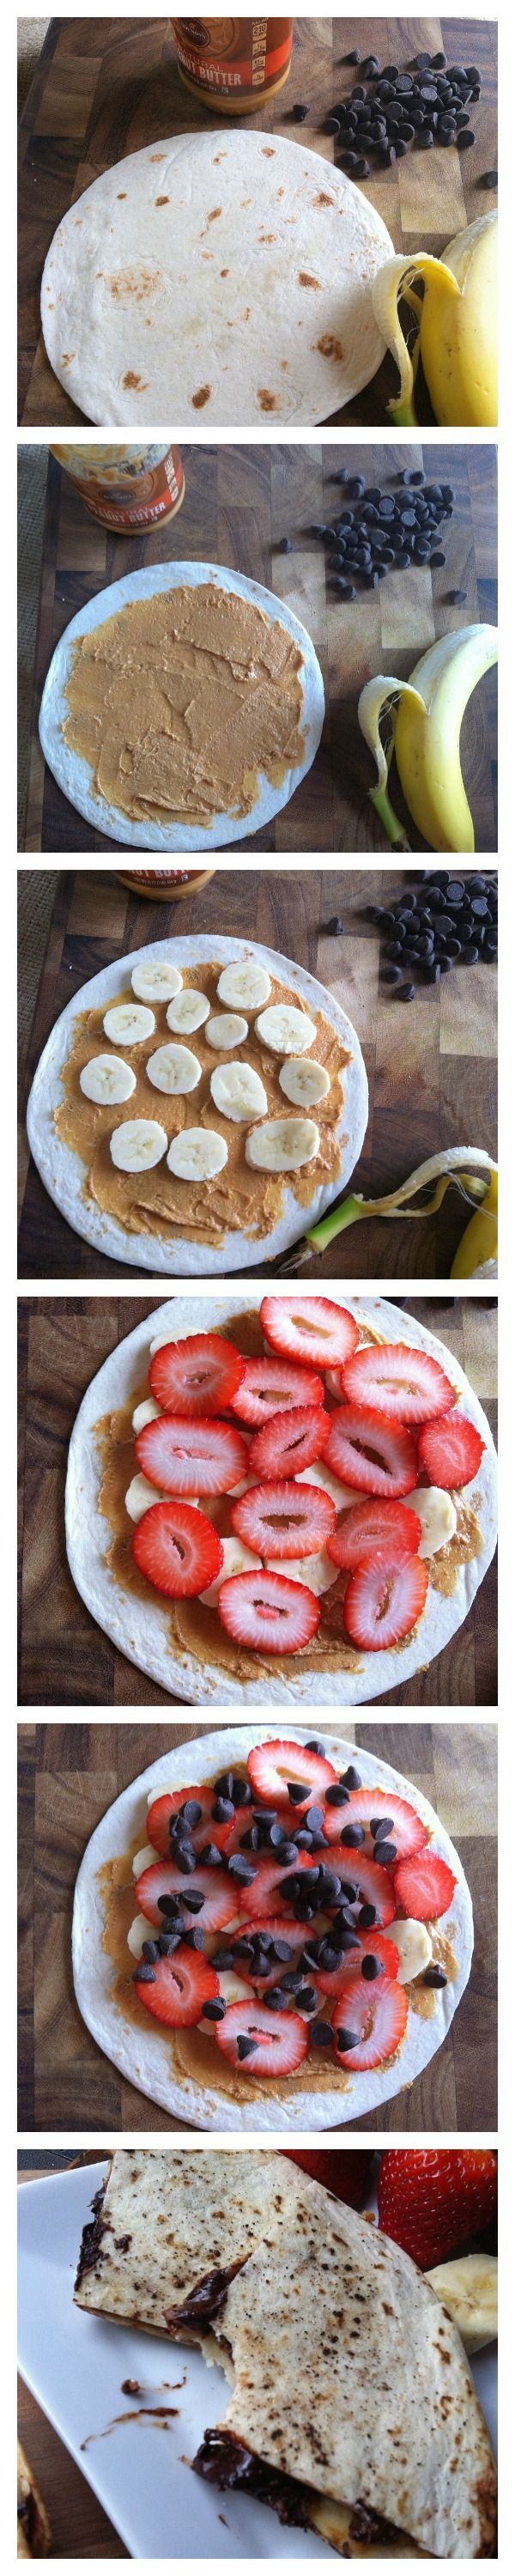 Dessert Quesadilla--peanut butter, banana, strawberries & chocolate with a crispy cinnamon and sugar tortilla